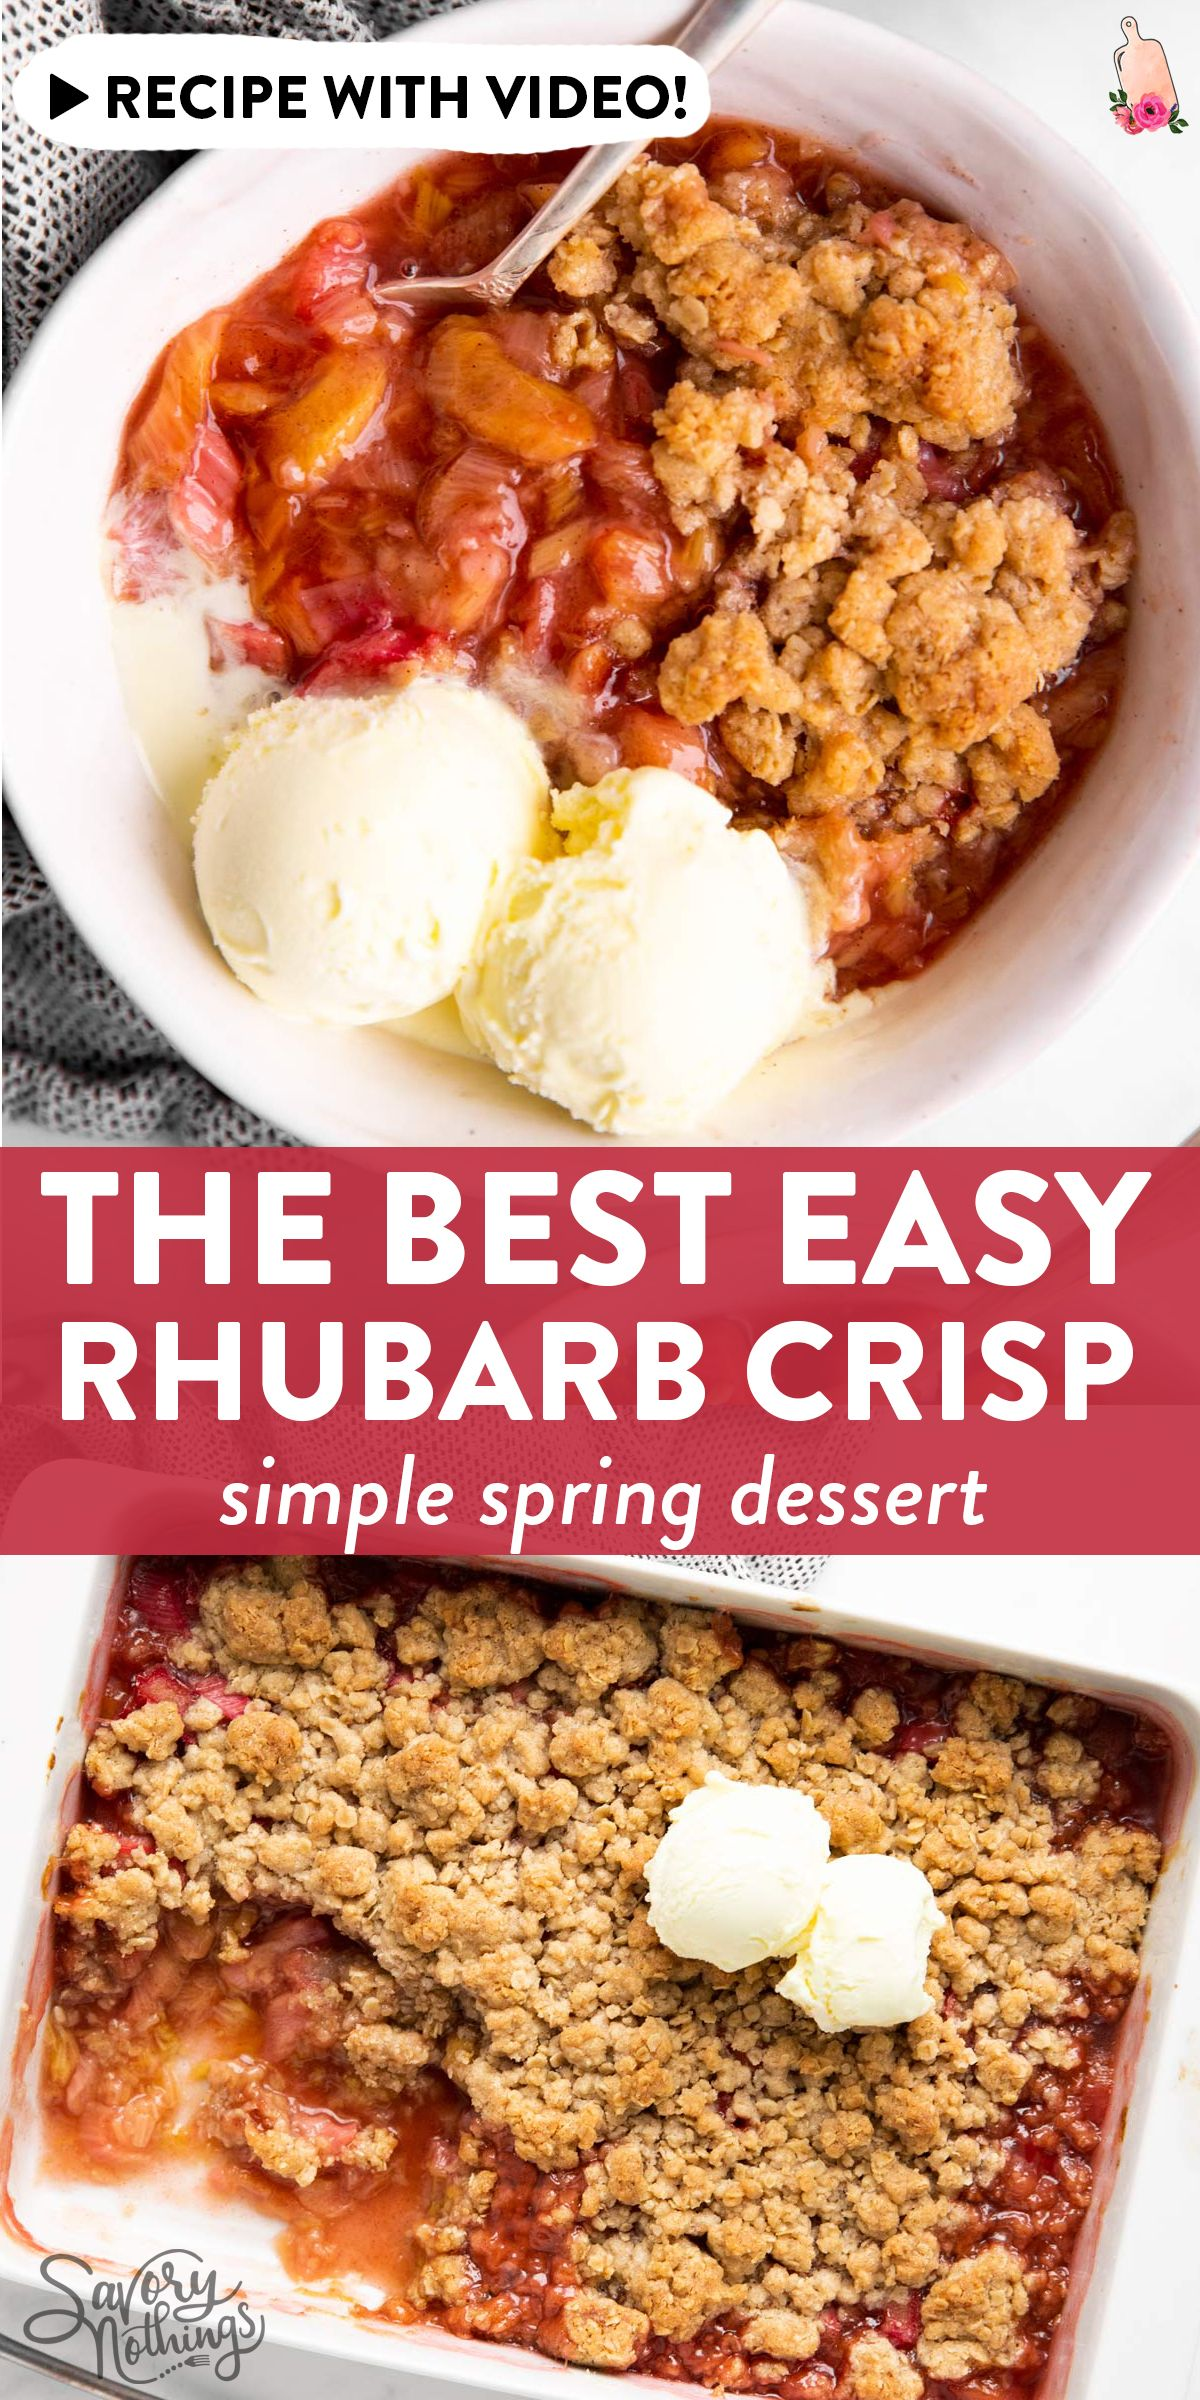 This easy rhubarb crisp is the best spring dessert out there! Quick and easy to bake with mostly pantry staples (can use frozen rhubarb!), this is a recipe you don't want to miss. Great for Easter, too! | #springrecipes #easterrecipes #easybakingrecipes #pantryrecipes #easyrecipes